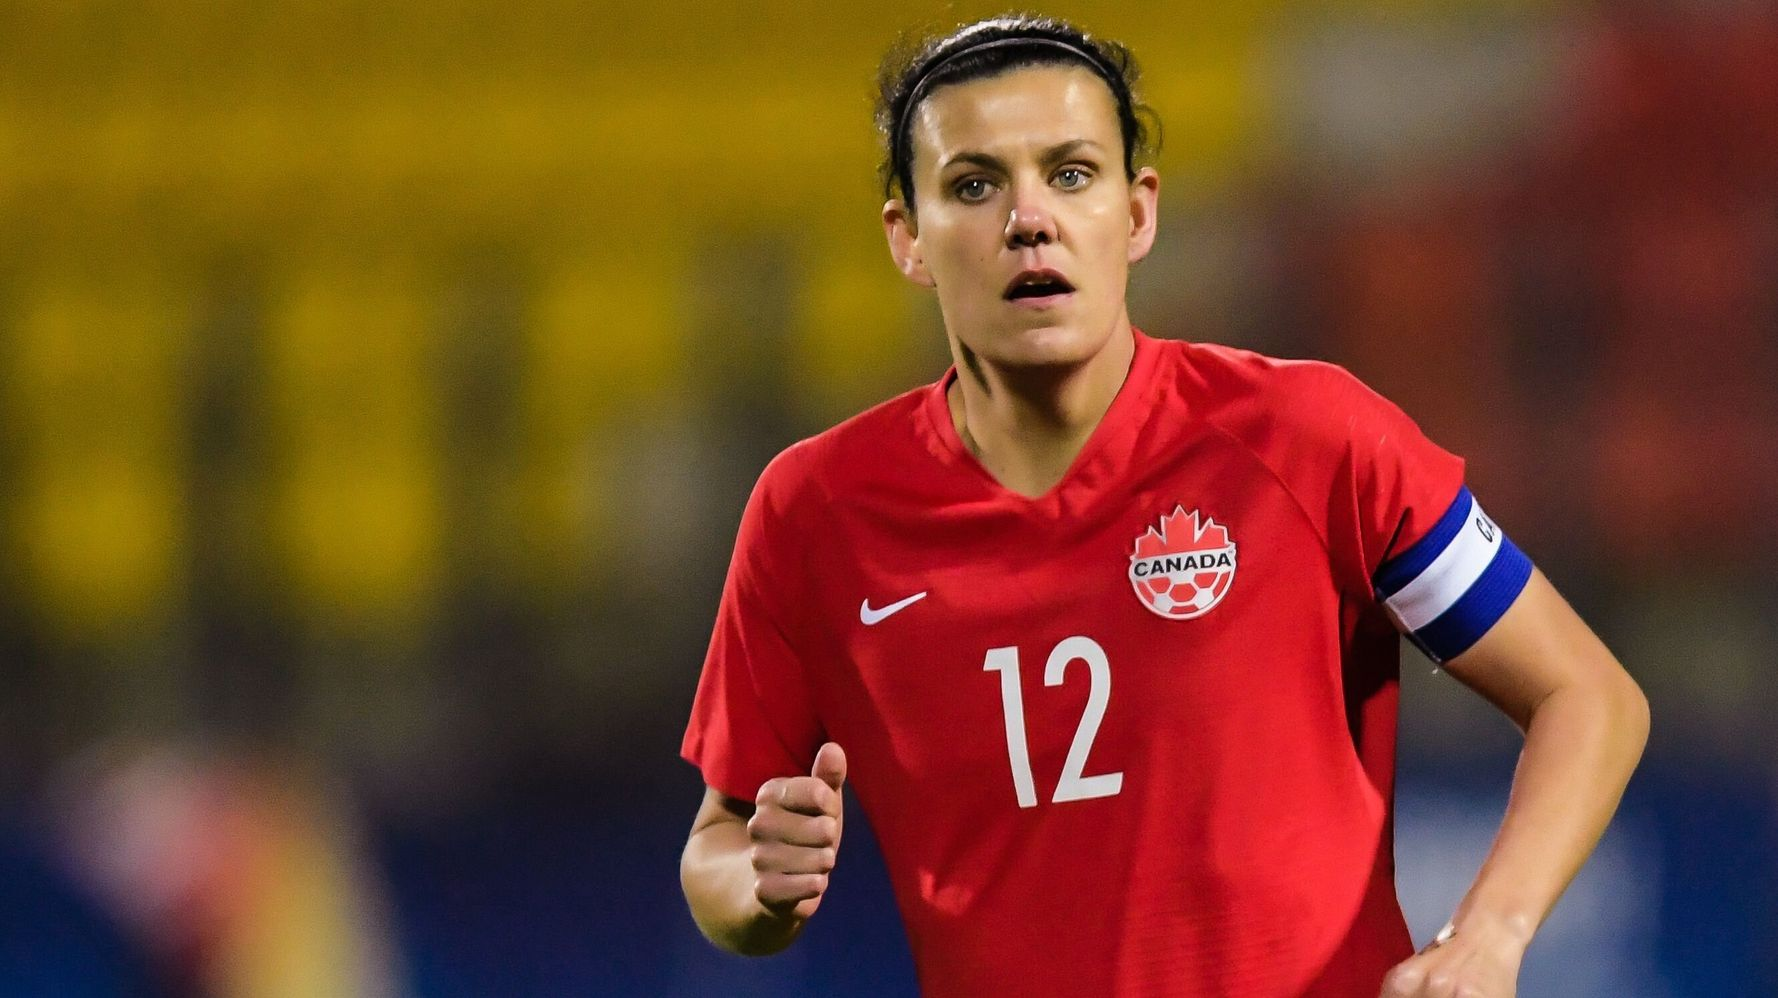 Internet Drags TSN For Forgetting Greatest Canadian Soccer Player